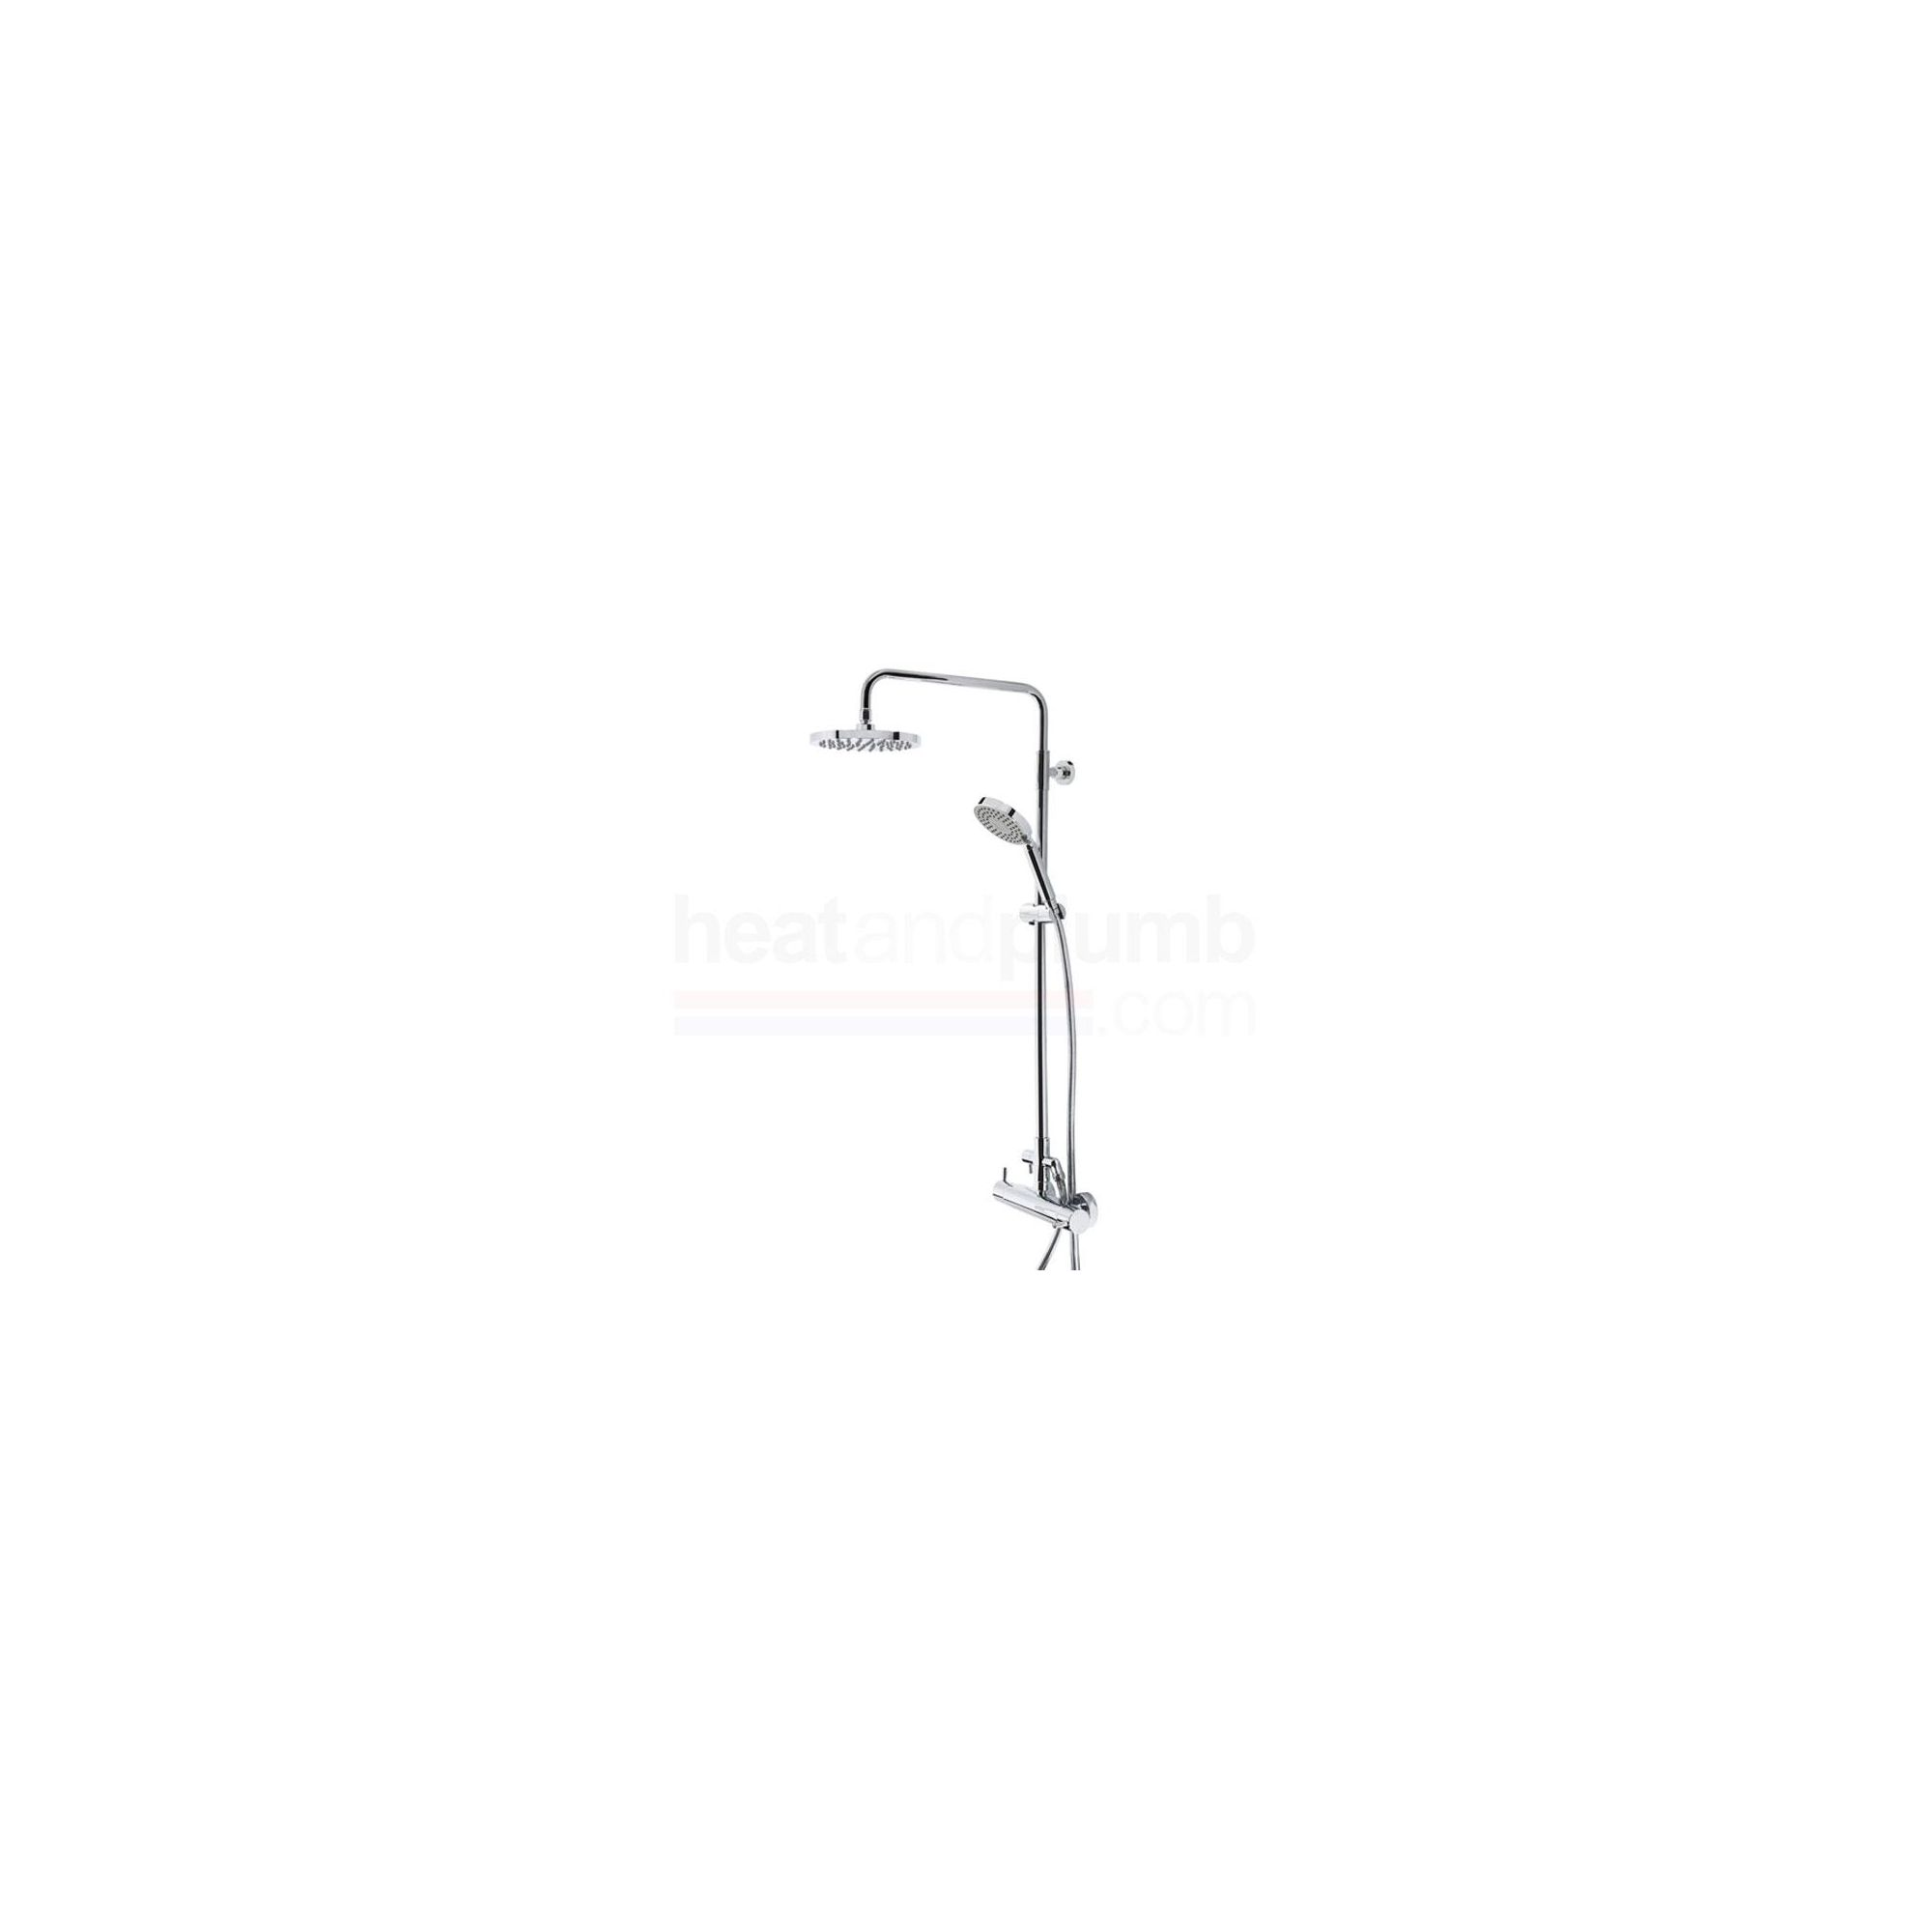 Tavistock Kinetic Thermostatic Bar Shower Valve with Round Shower Head & Multi Function Handset at Tesco Direct